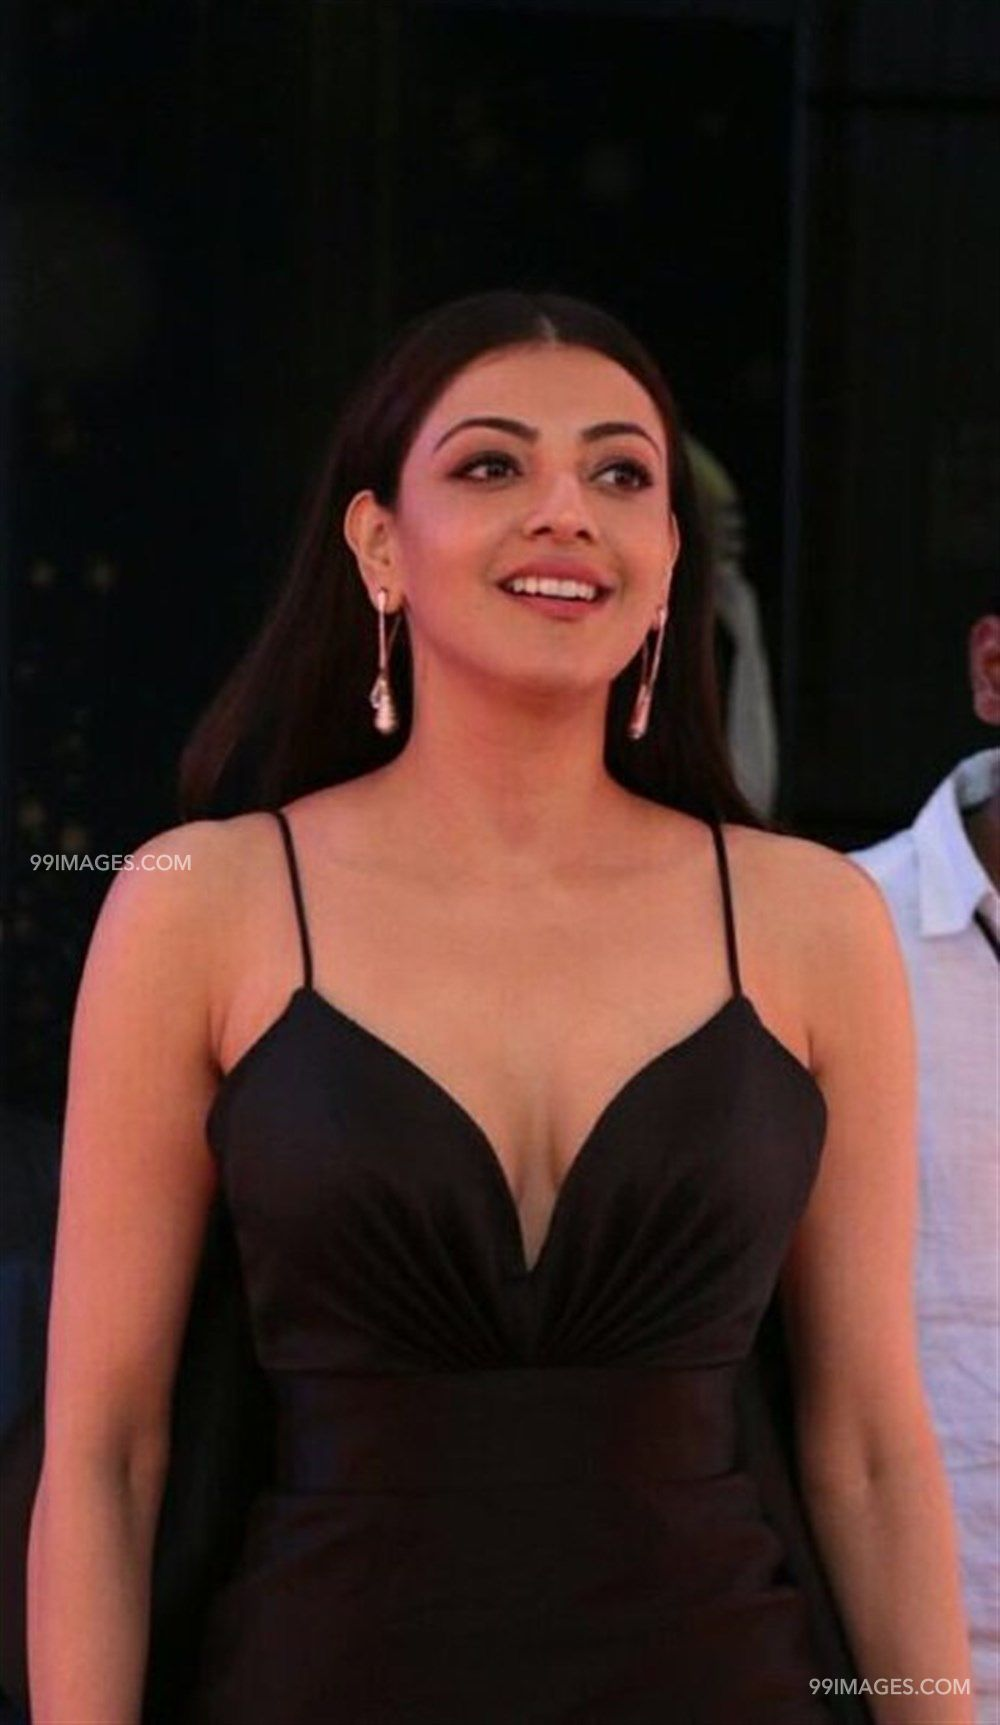 Kajal Agarwal Hot HD Photos in Saree (1080p) (133) - Kajal Agarwal